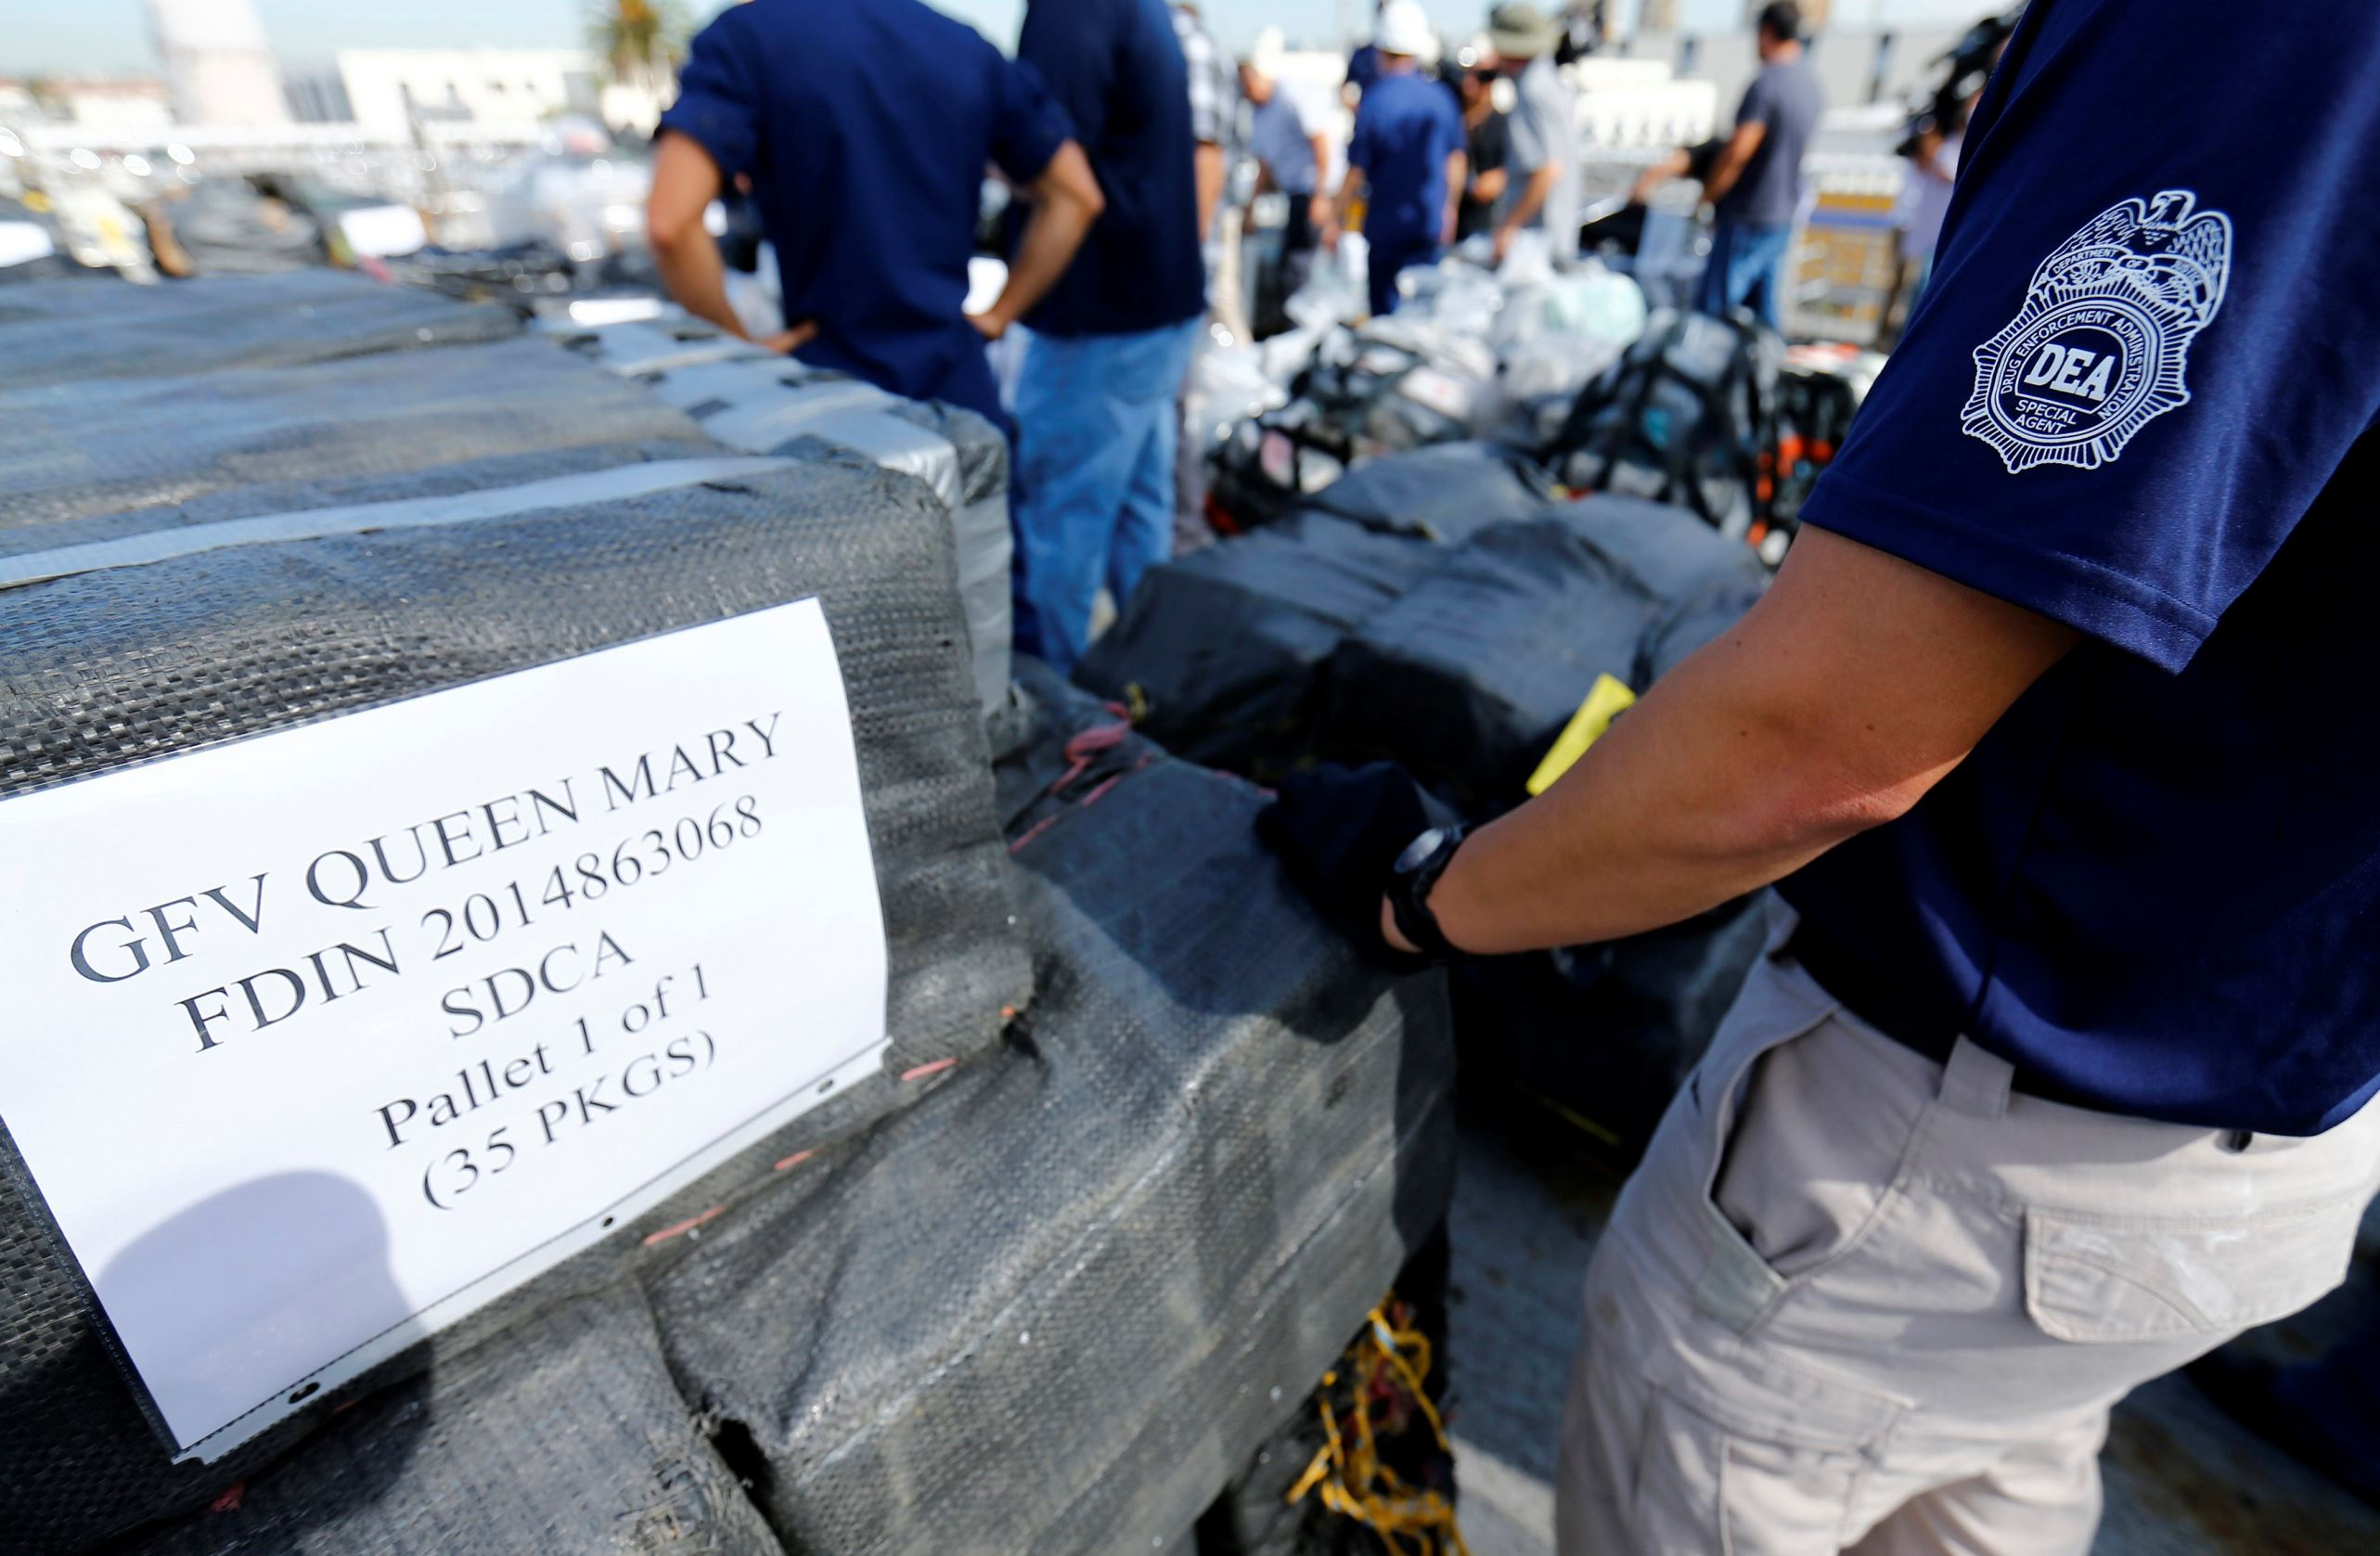 Drug Enforcement Agency (DEA) agents take inventory of seized cocaine packages, at Naval Base San Diego, October 6, 2014. Some 28,000 pounds (12.7 ton) of cocaine were seized by U.S forces in 18 separate interdictions.